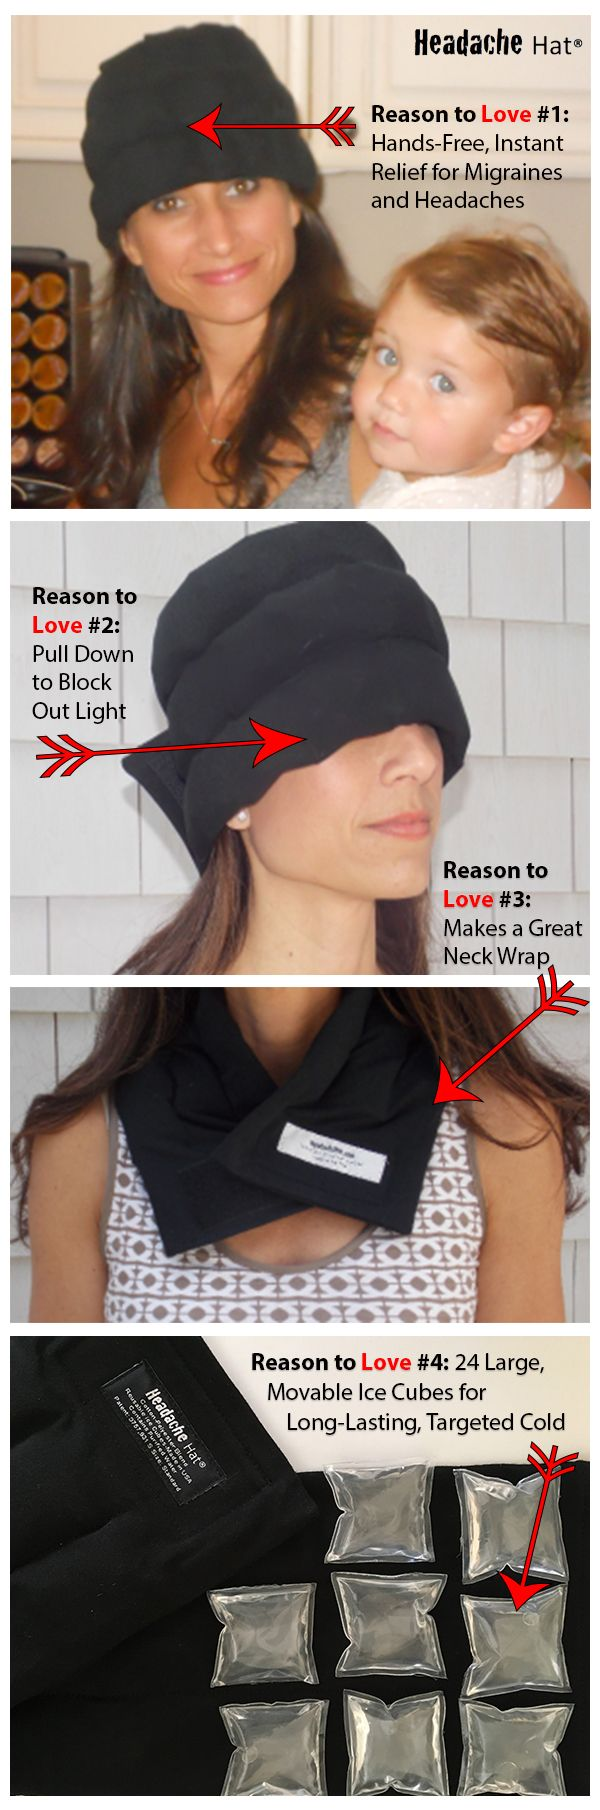 Makes a great gift! This comfortable, wearable ice pack provides effective, natural relief for migraines and headaches so you can keep going. It also makes a great neck wrap and is awesome for your post-workout cool down. You'll find lots of uses for this innovative product and it makes a great gift for the migraine sufferer or athlete in your life. Order at Amazon